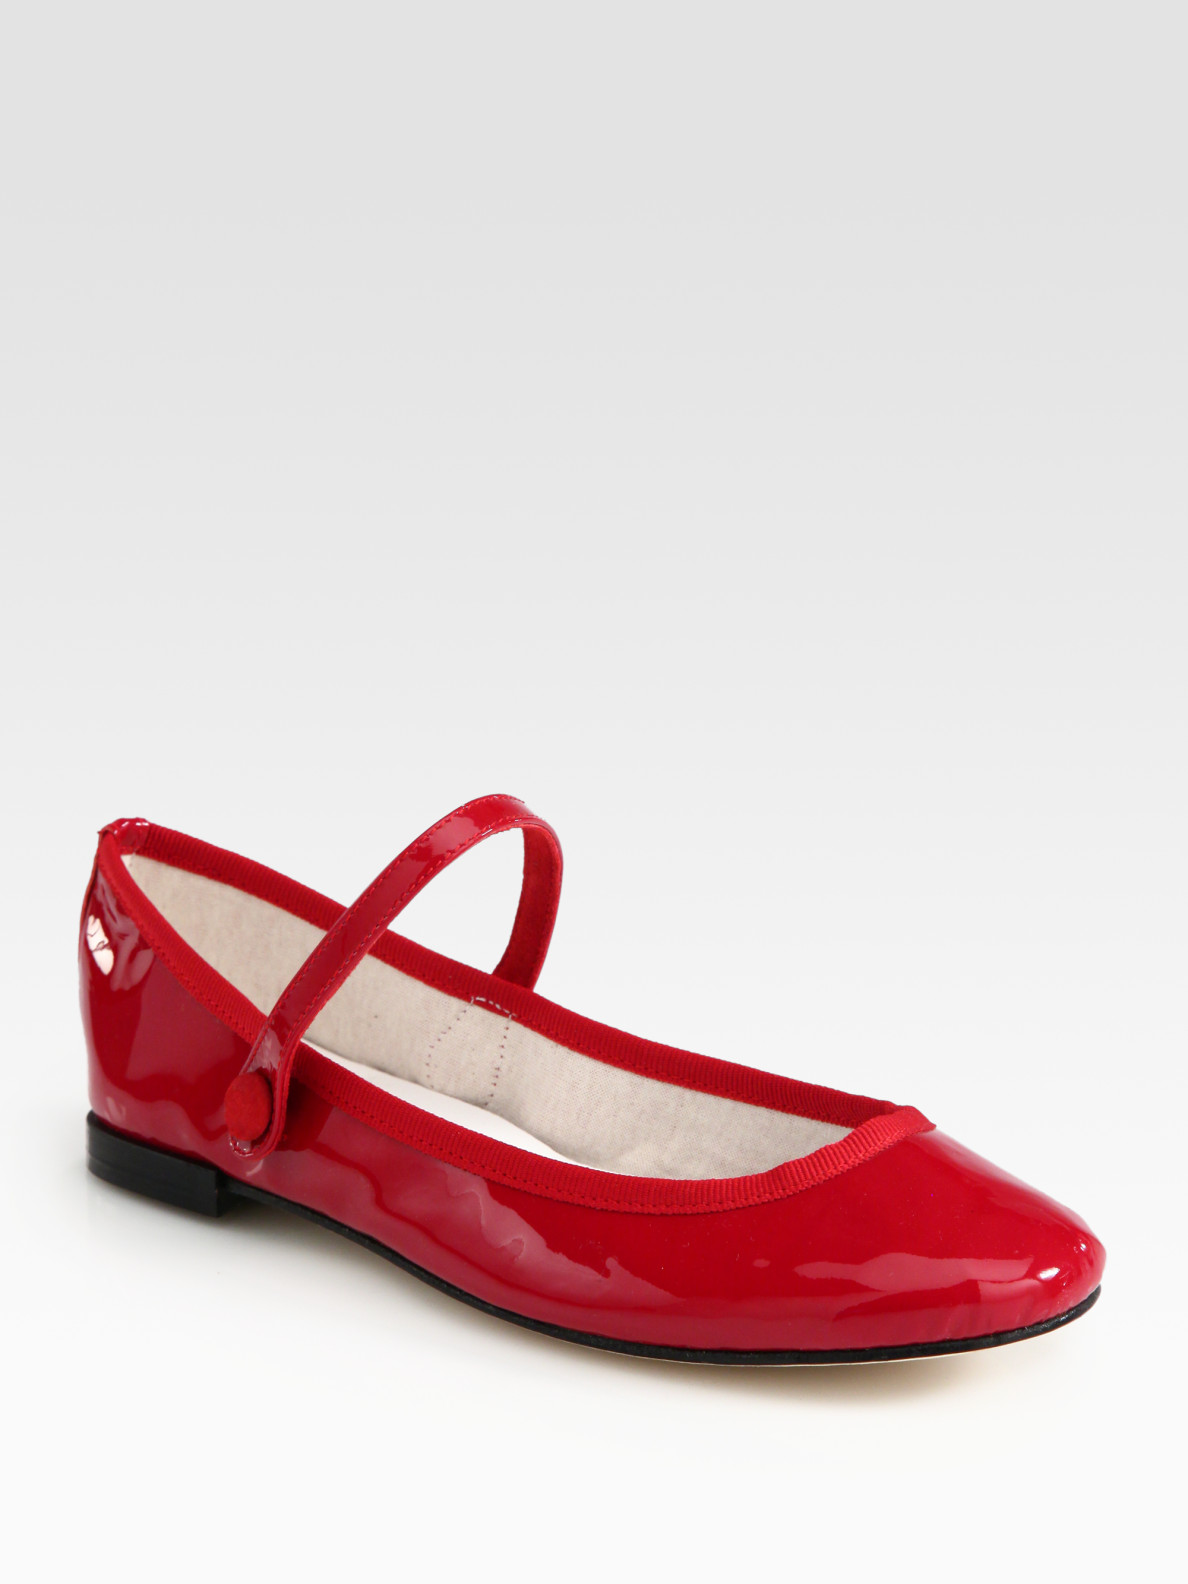 Lyst - Repetto Lio Patent Leather Mary Jane Ballet Flats in Red